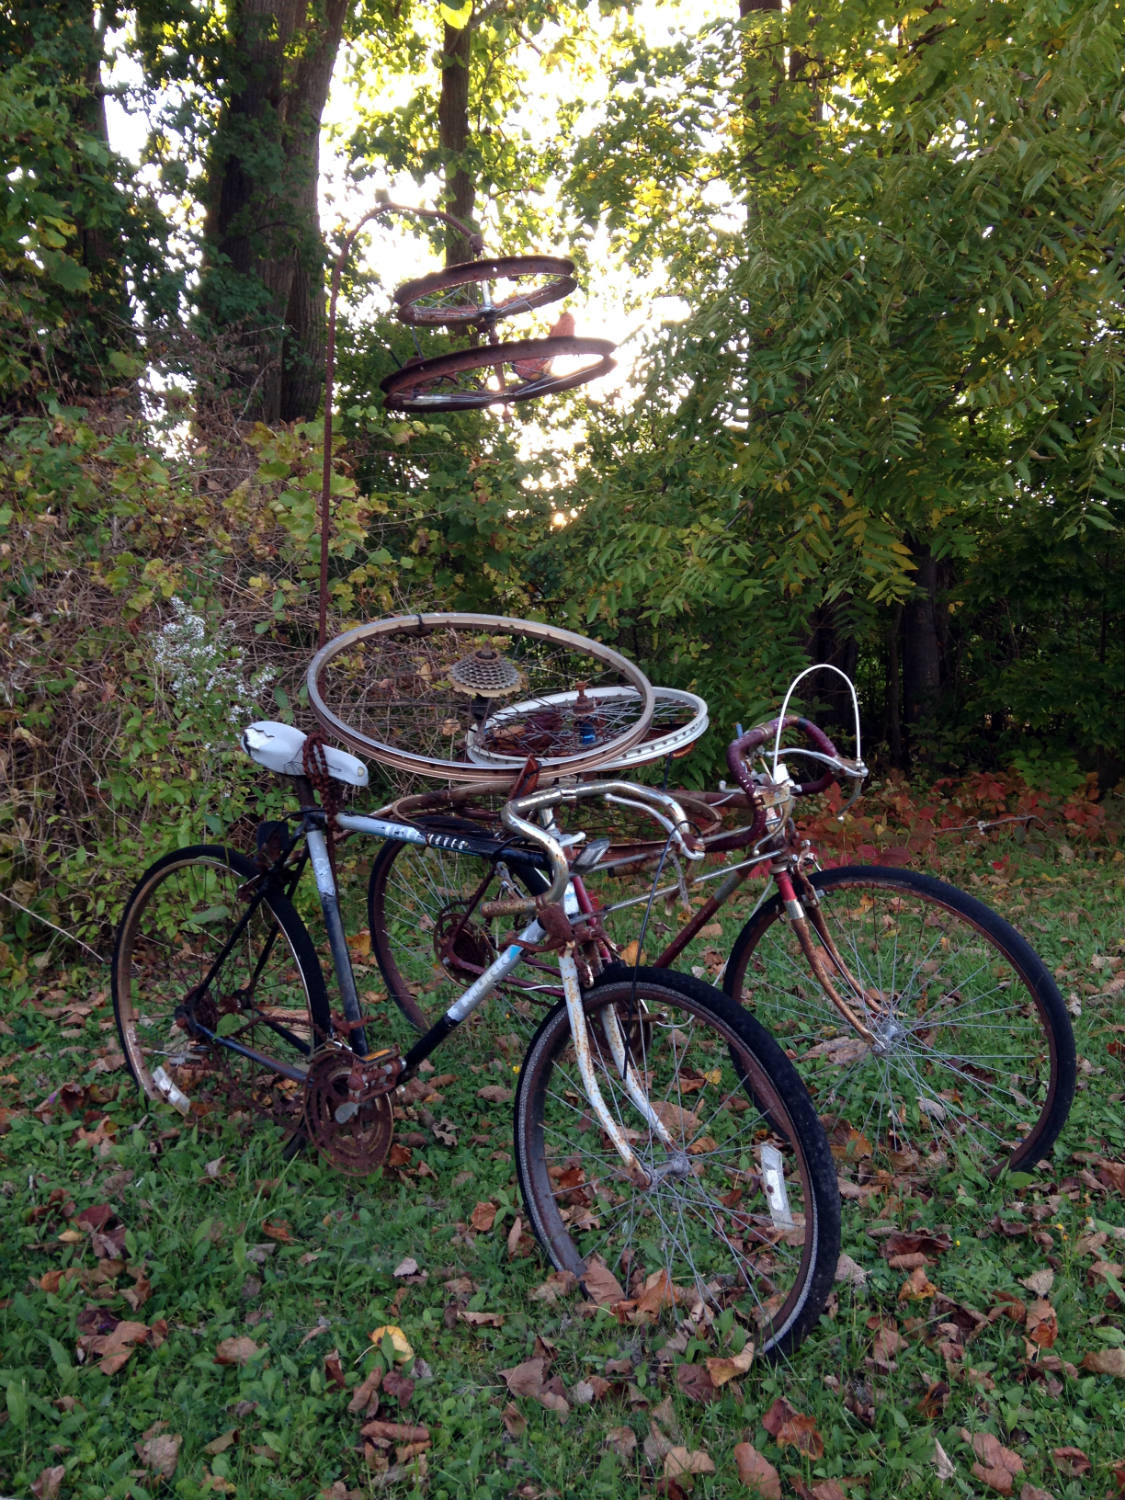 Bicycle Art and Yard Sculptures - Palmyra, NY Bikes